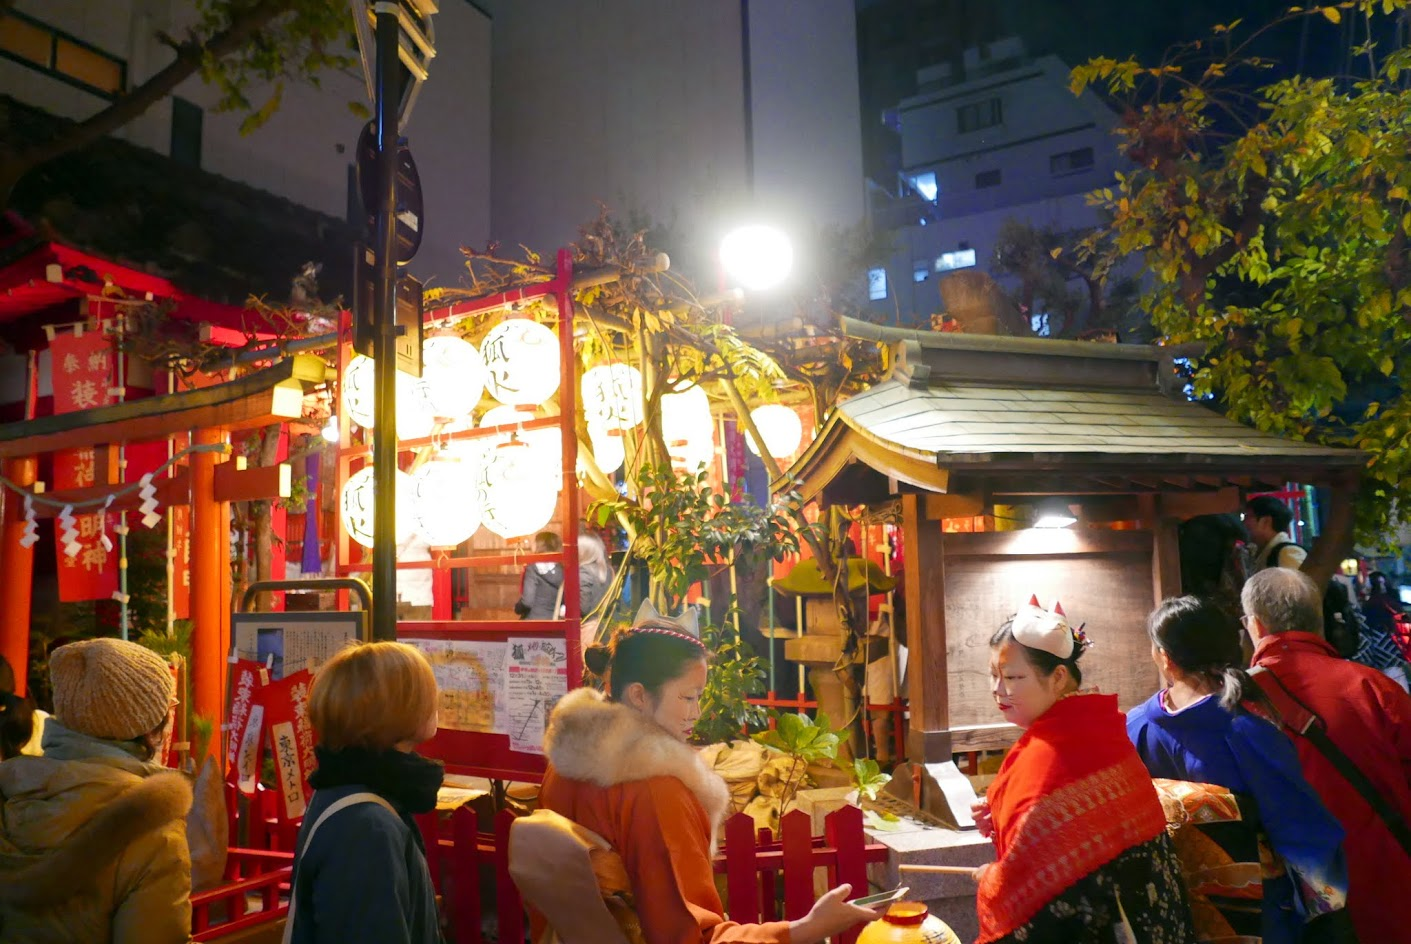 New Year's Eve in Japan: Oji Kitsune-no-gyorestu Fox Parade is held every year celebrating the folklore of foxes disguised as humans visiting the shrine on New Year's Eve. Shrine-goers parade the streets holding chochin lanterns representing the light of life and the light of hope.